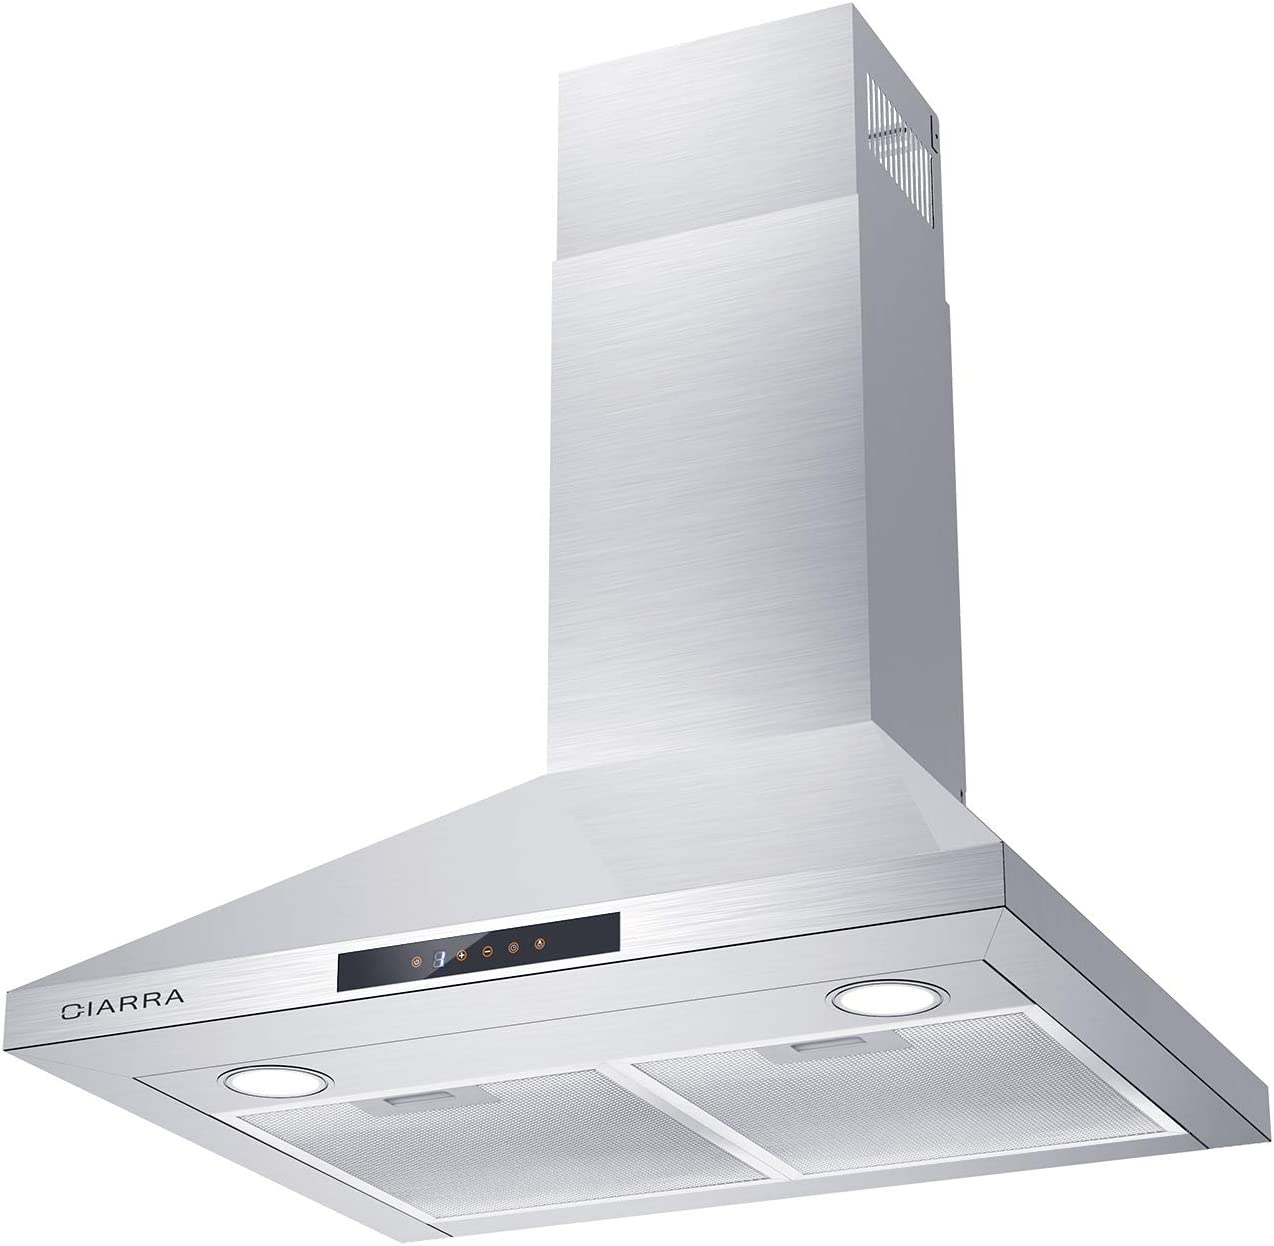 Ciarra Cas75206 30 Inch 450 Cfm Stainless Steel Wall Mount Range Hood, Ducted/Ductless Convertible Stove Vent Hood With Permanent Filters & 3 Speed Exhaust Fan